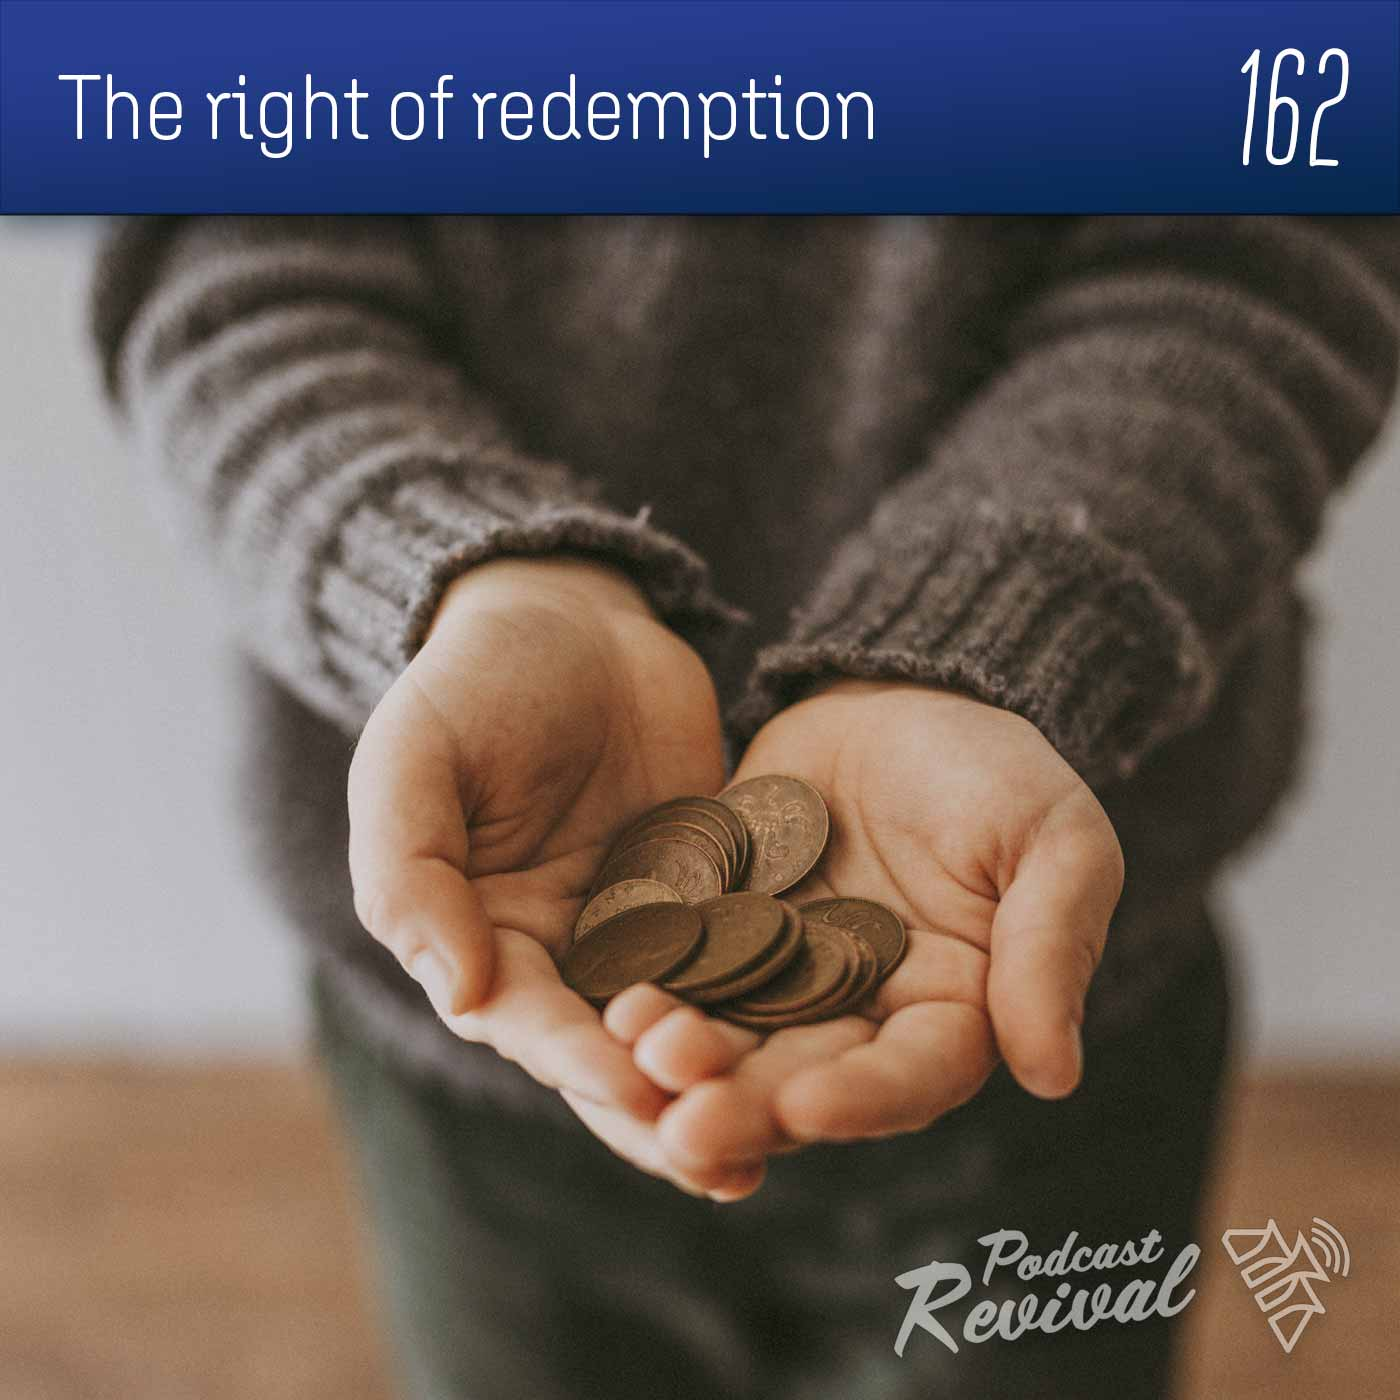 The right of redemption